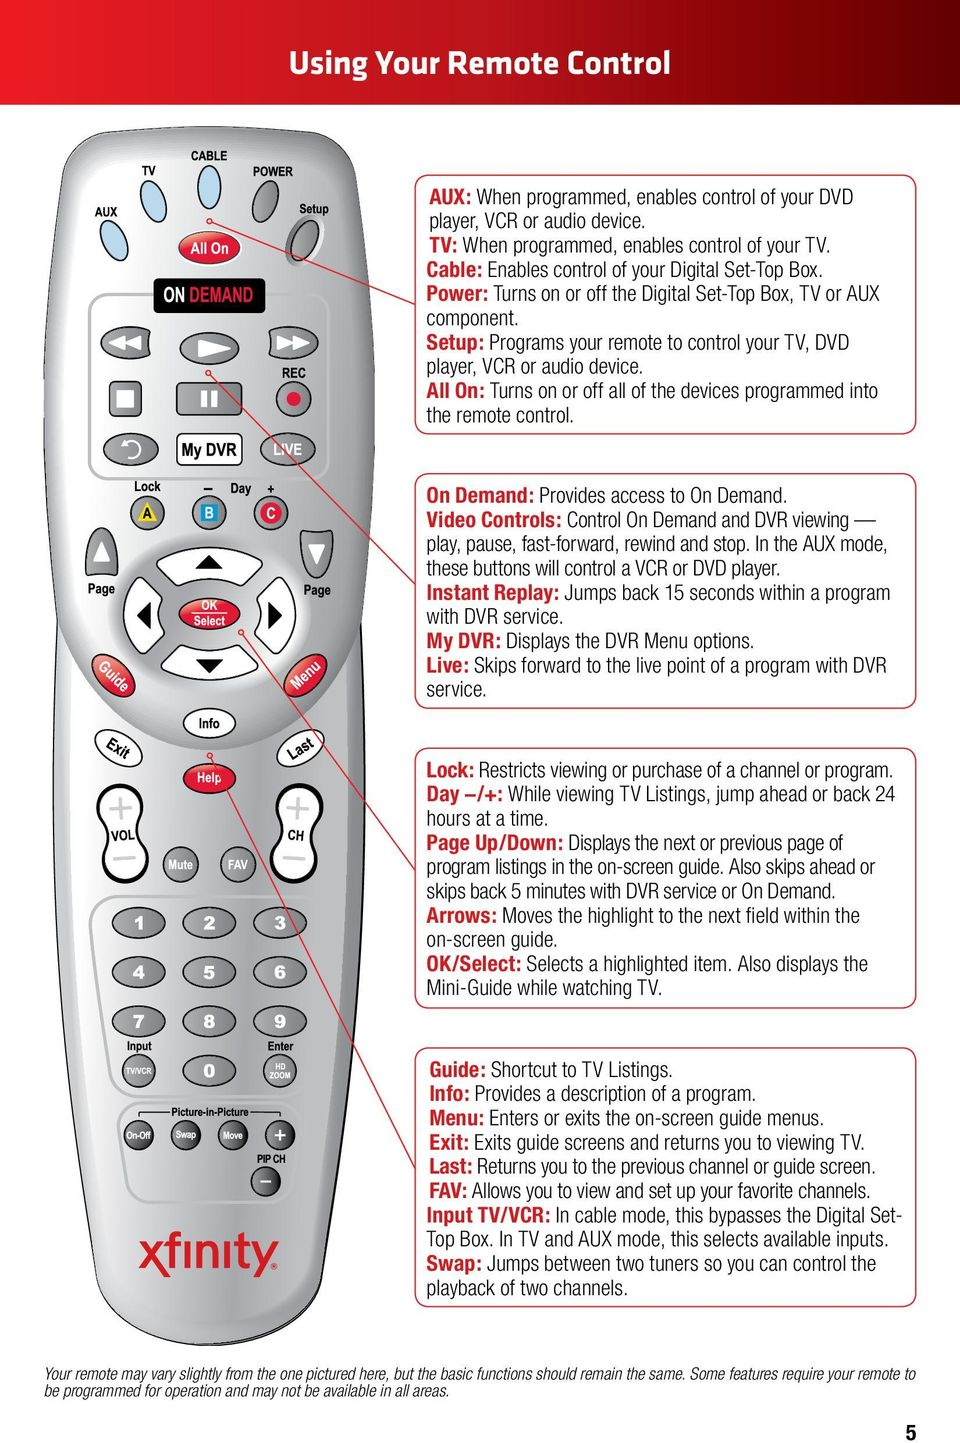 Setup: Programs your remote to control your TV, DVD player, VCR or audio device. All On: Turns on or off all of the devices programmed into the remote control. On Demand: Provides access to On Demand.